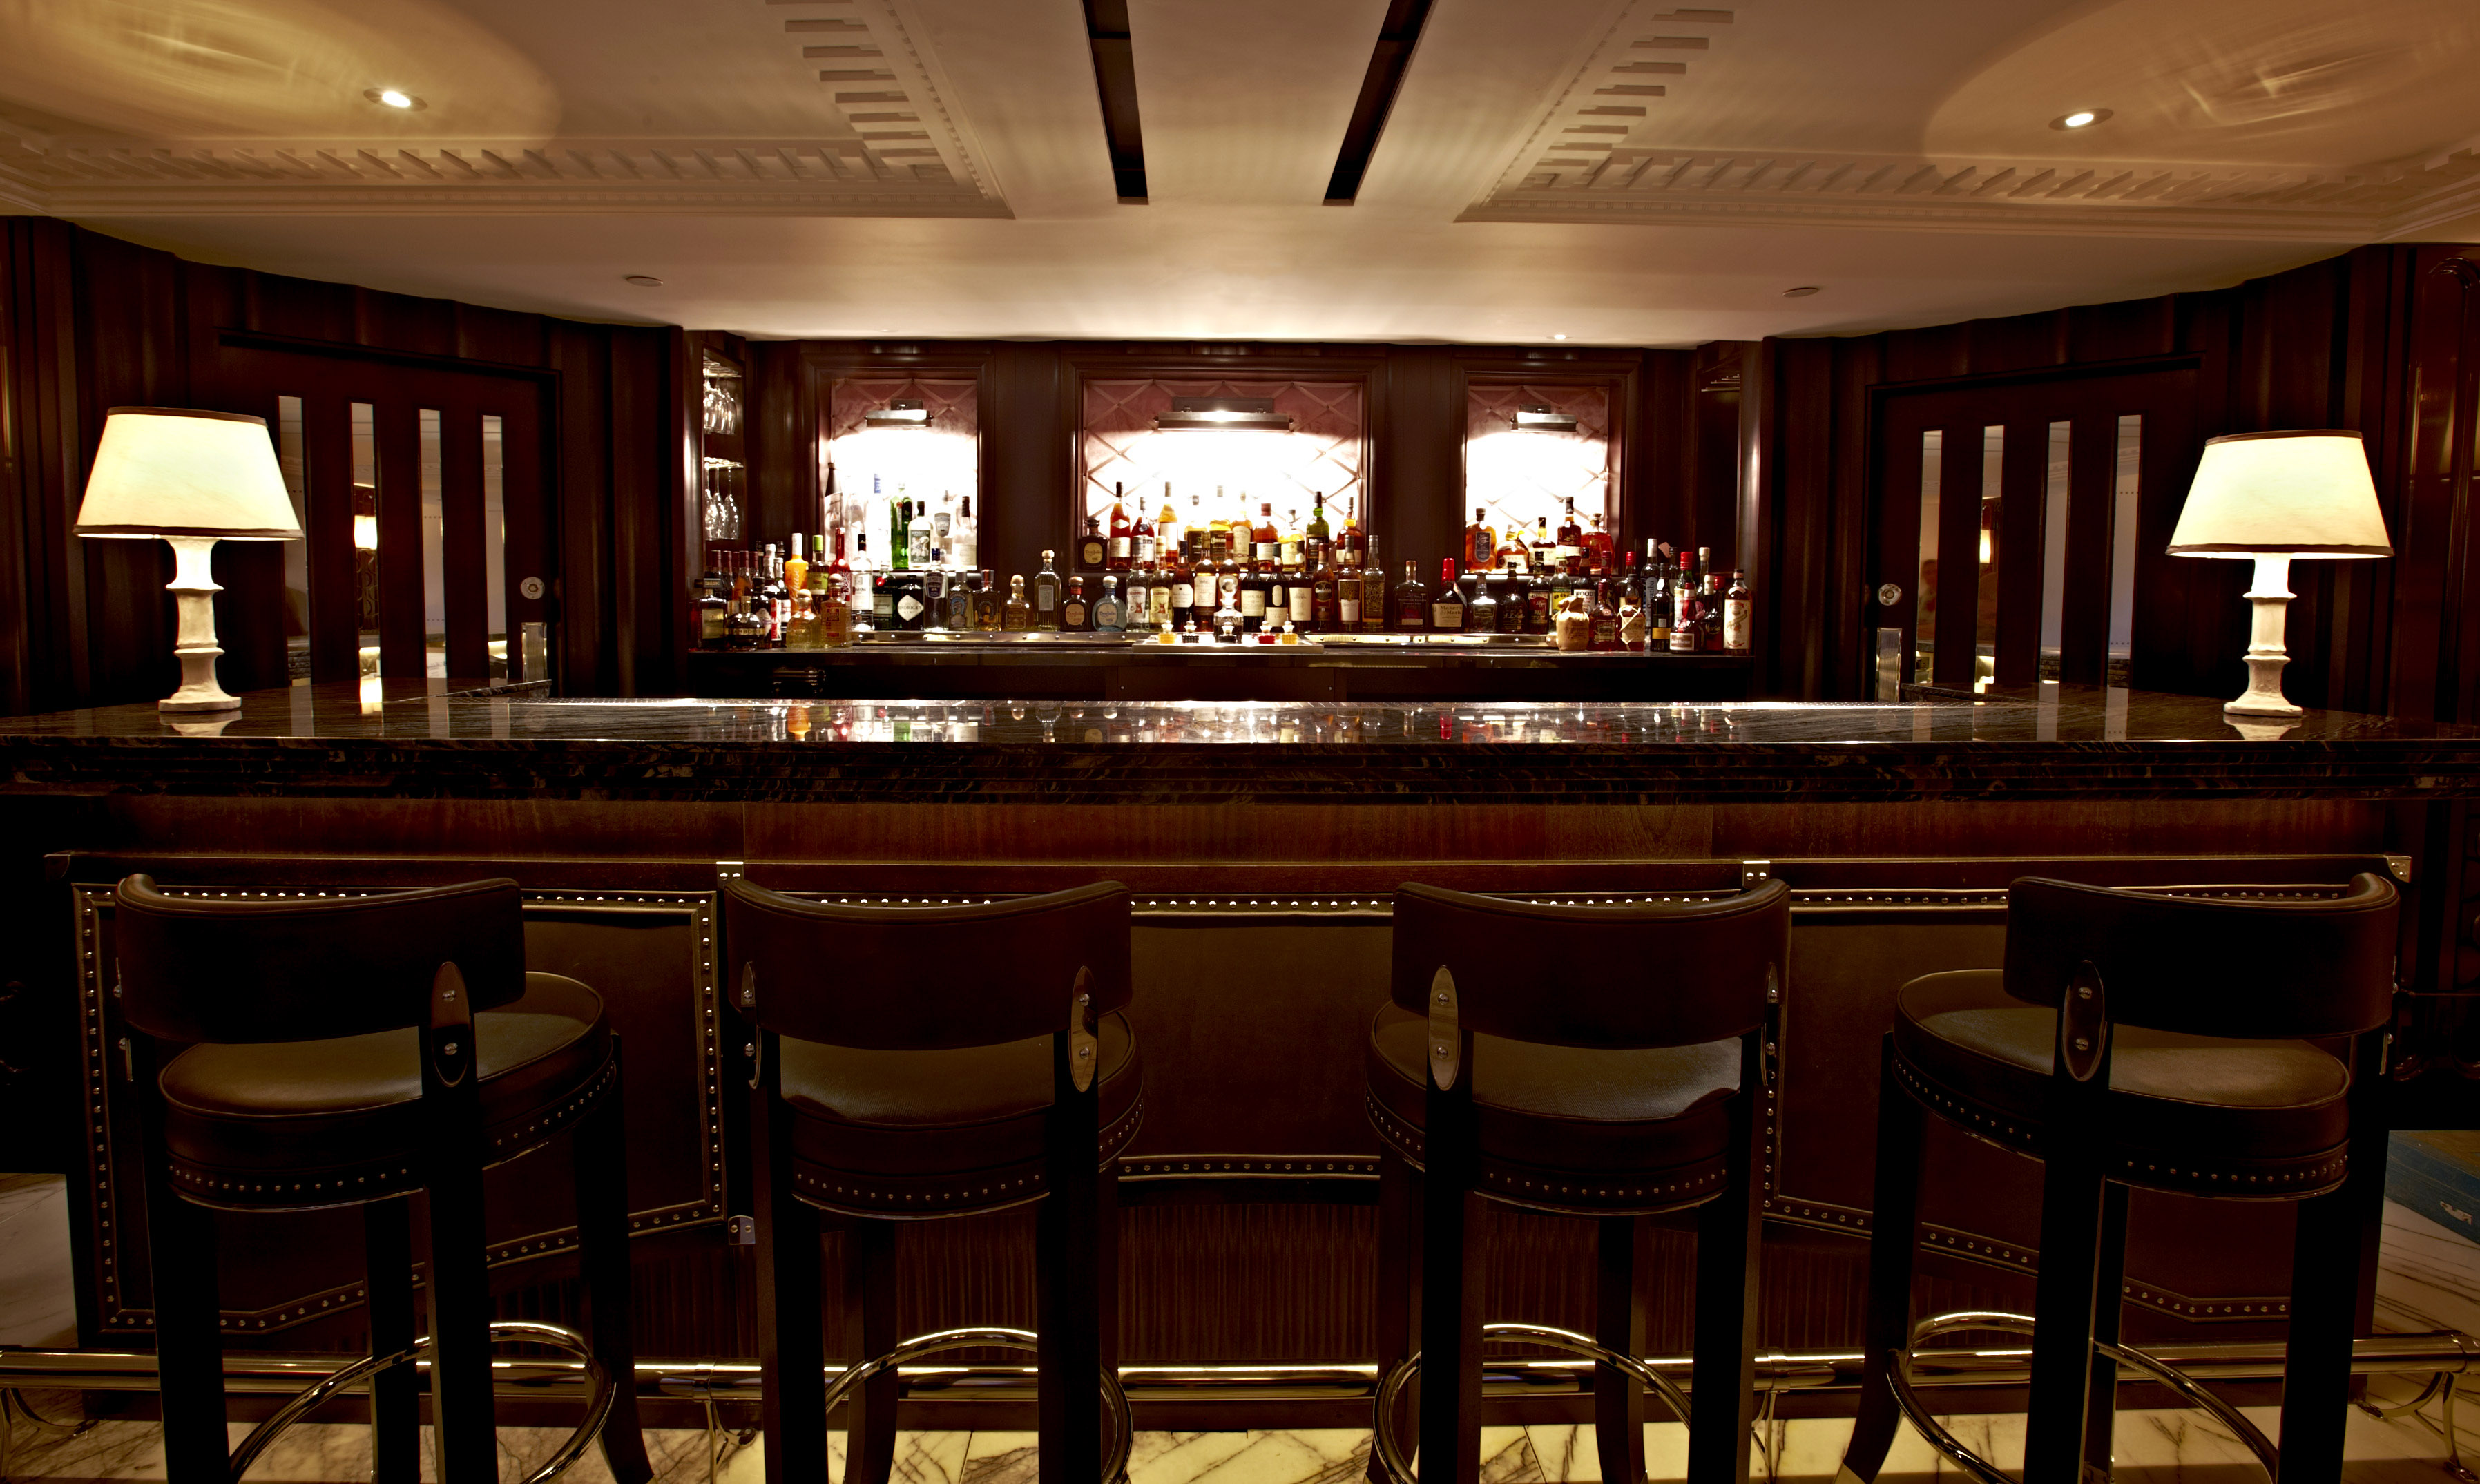 The Luggage Room at the Marriot